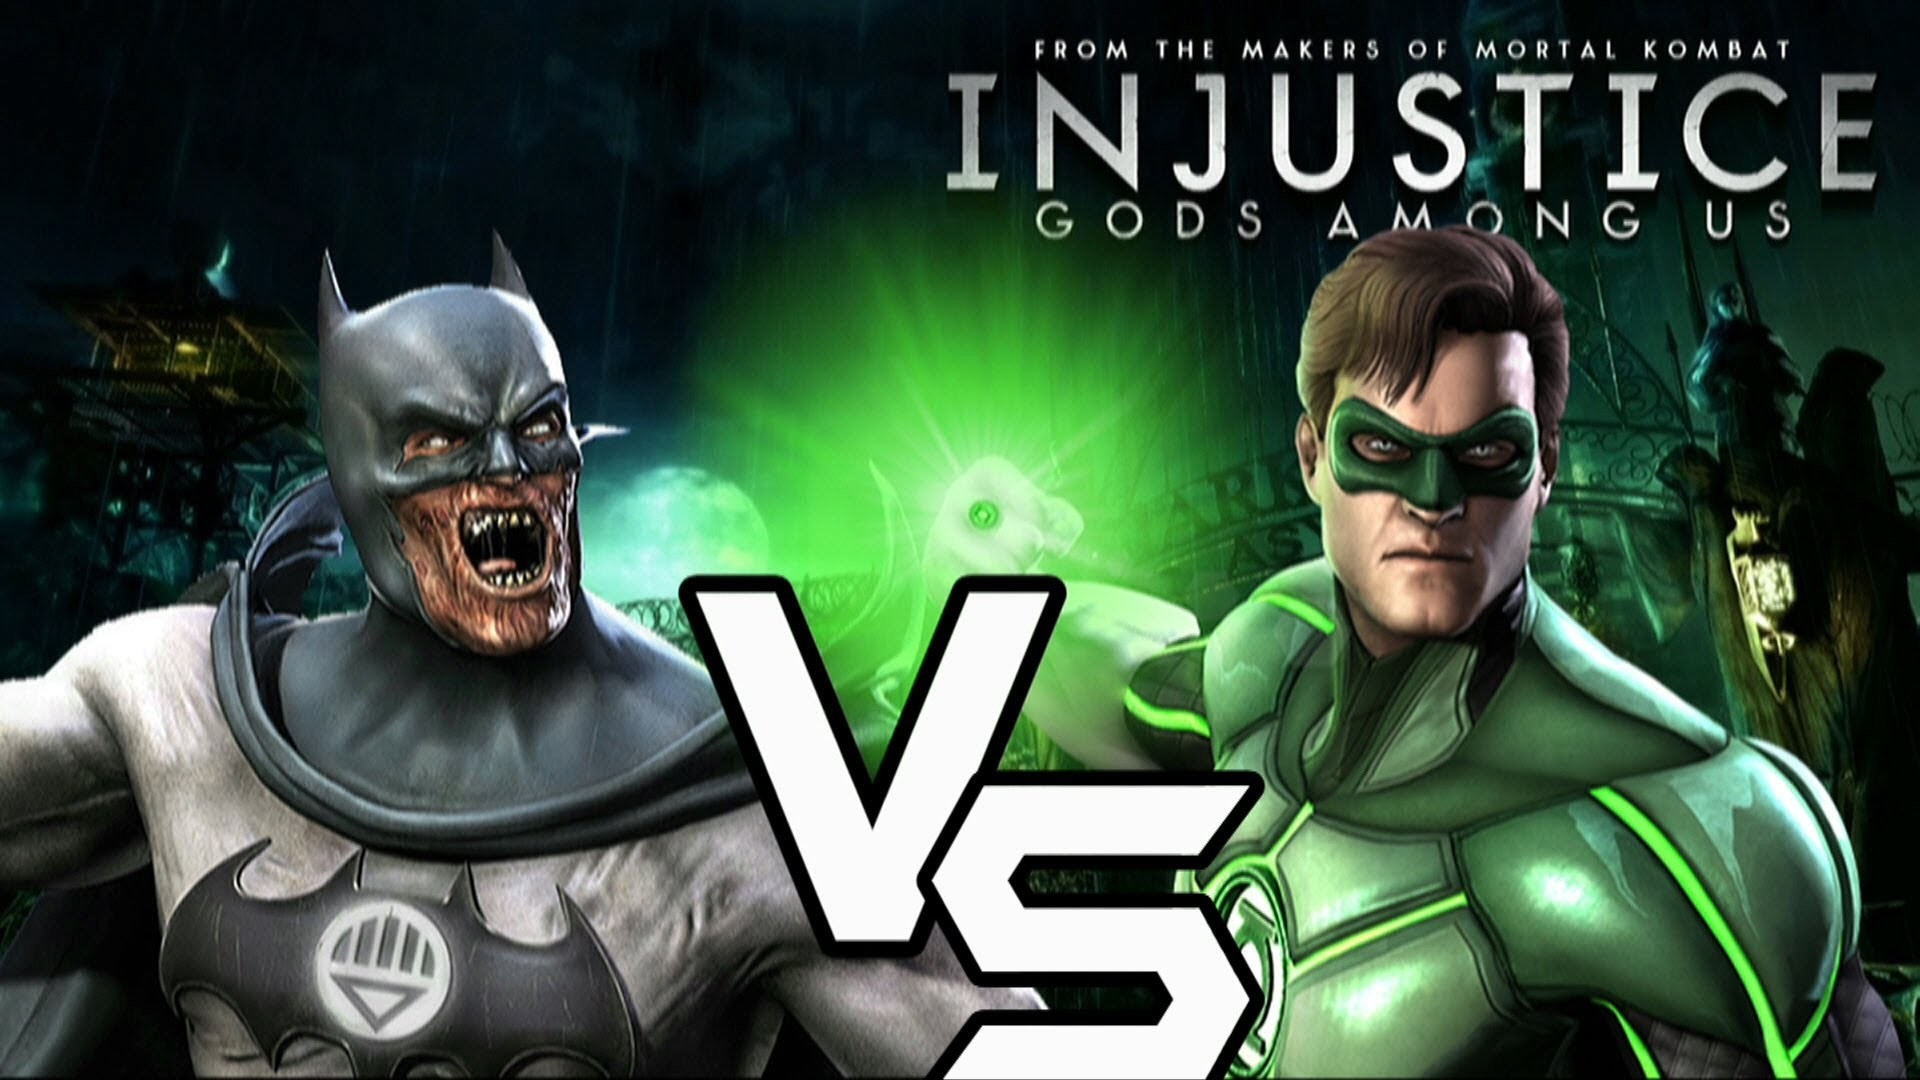 Res: 1920x1080, Injustice Gods Among Us - Blackest Night Batman vs Green Lantern with Lore  & Skins - YouTube